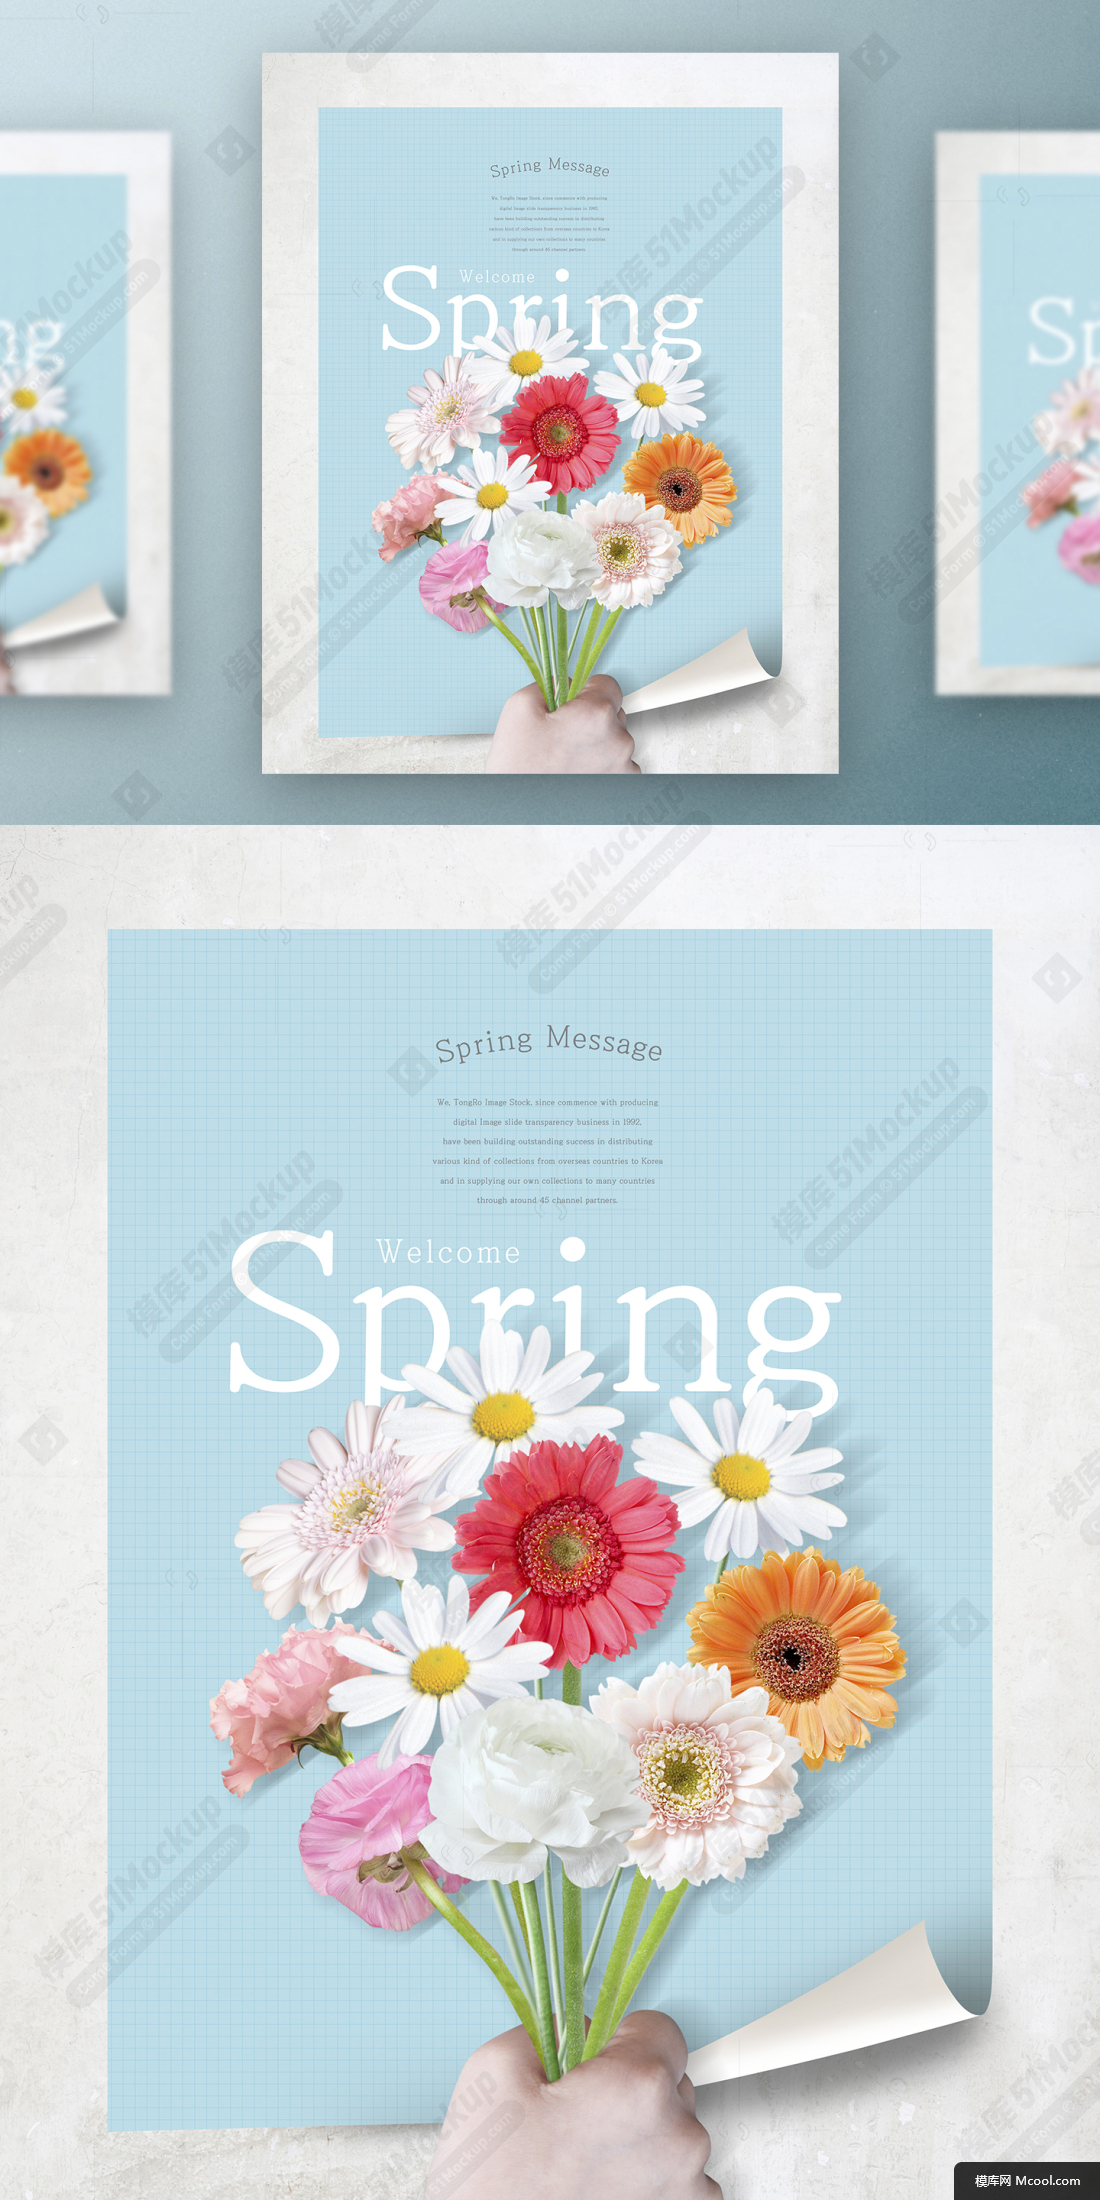 春季春天韩式唯美小清新海报PSD模板Korean spring air beauty poster PSD template Vol.11春季春天韩式唯美小清新海报PSD模板Korean spring air beauty poster PSD template (1.jpg